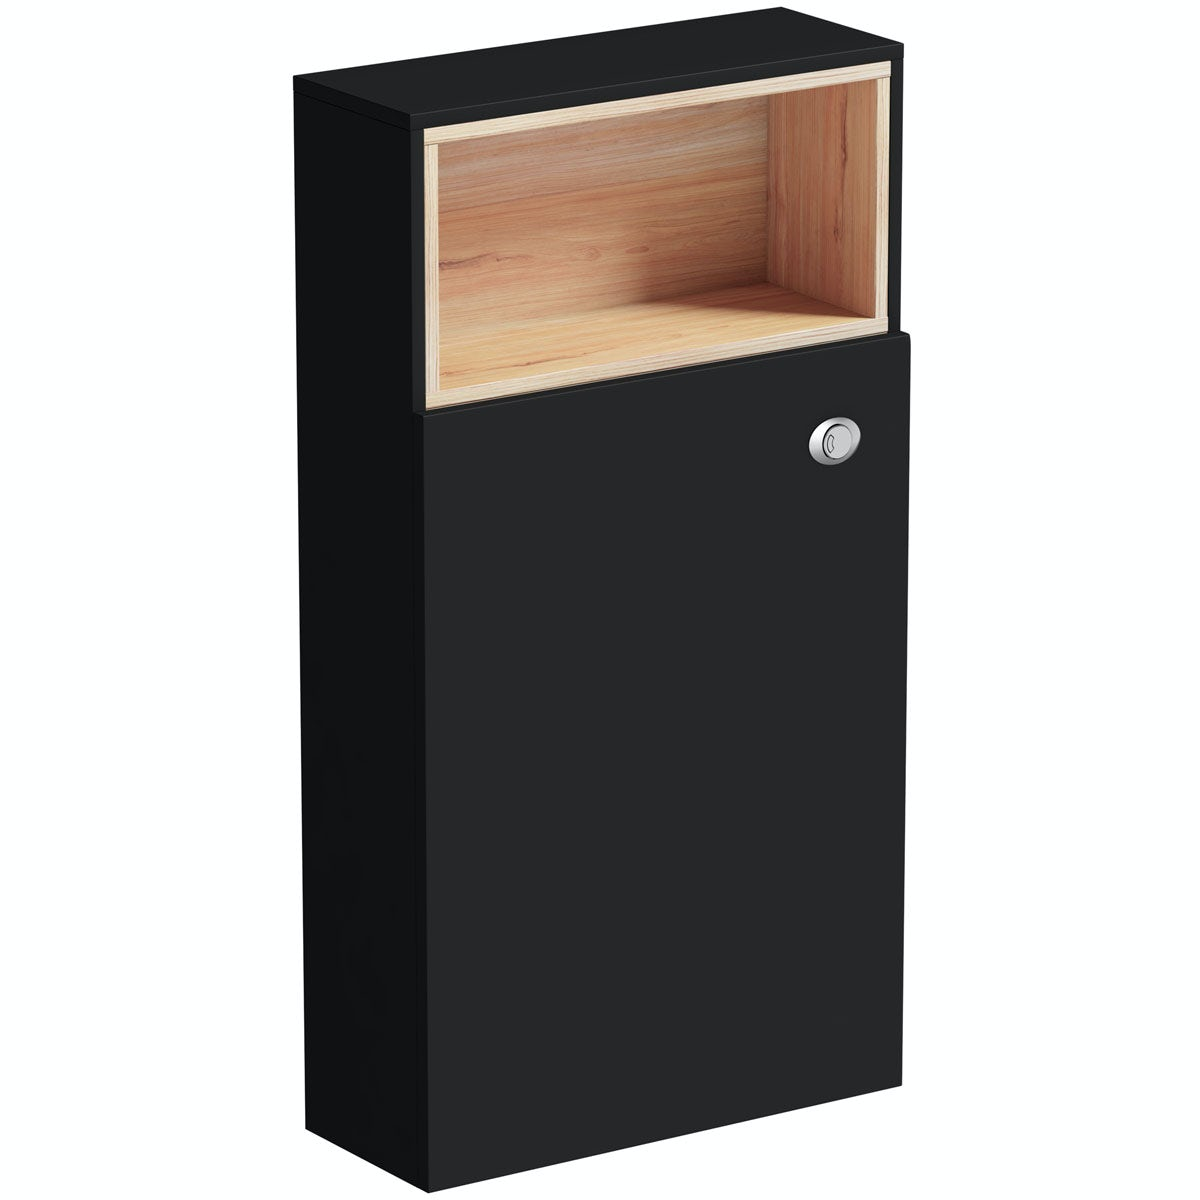 Mode Tate anthracite & oak back to wall toilet unit